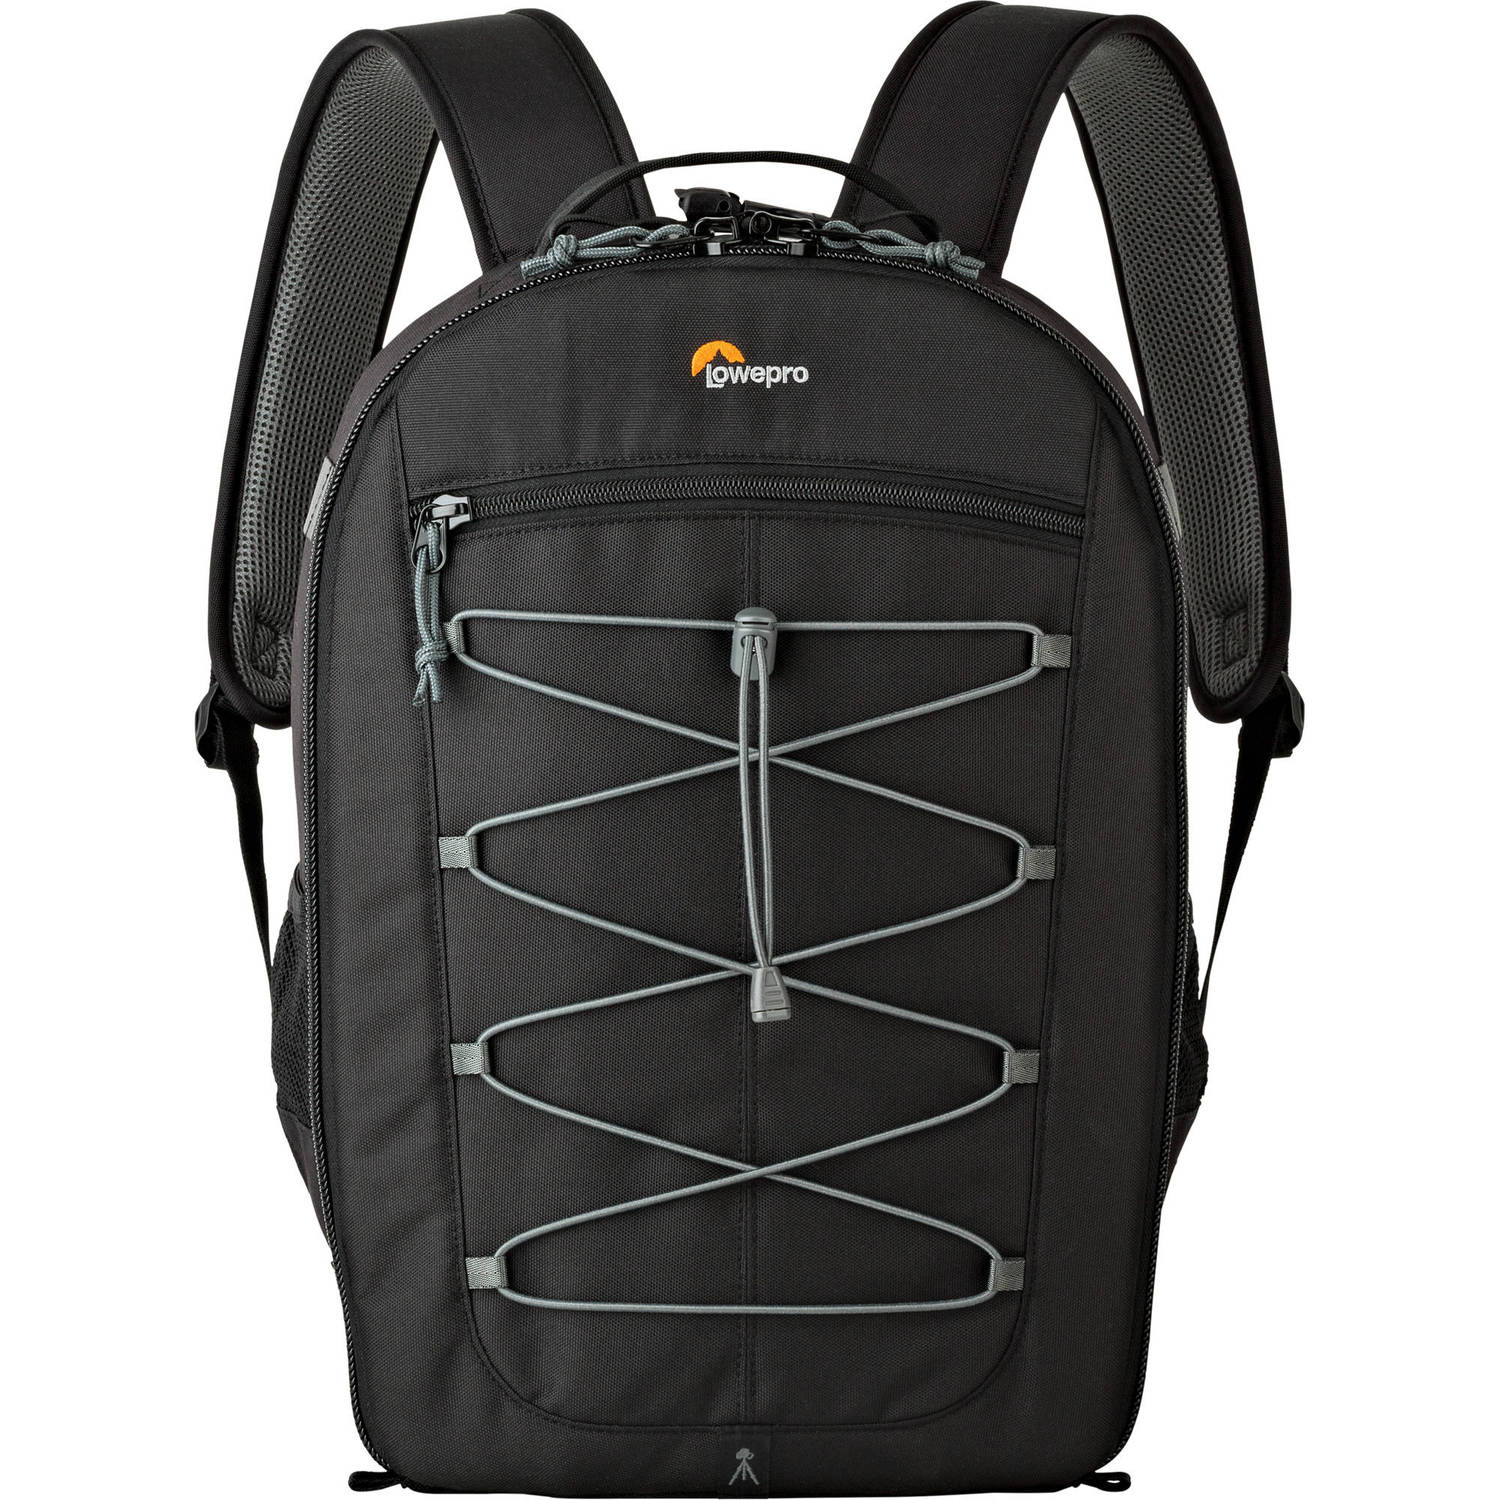 Mochila Lowepro Classic Series BP 300 AW